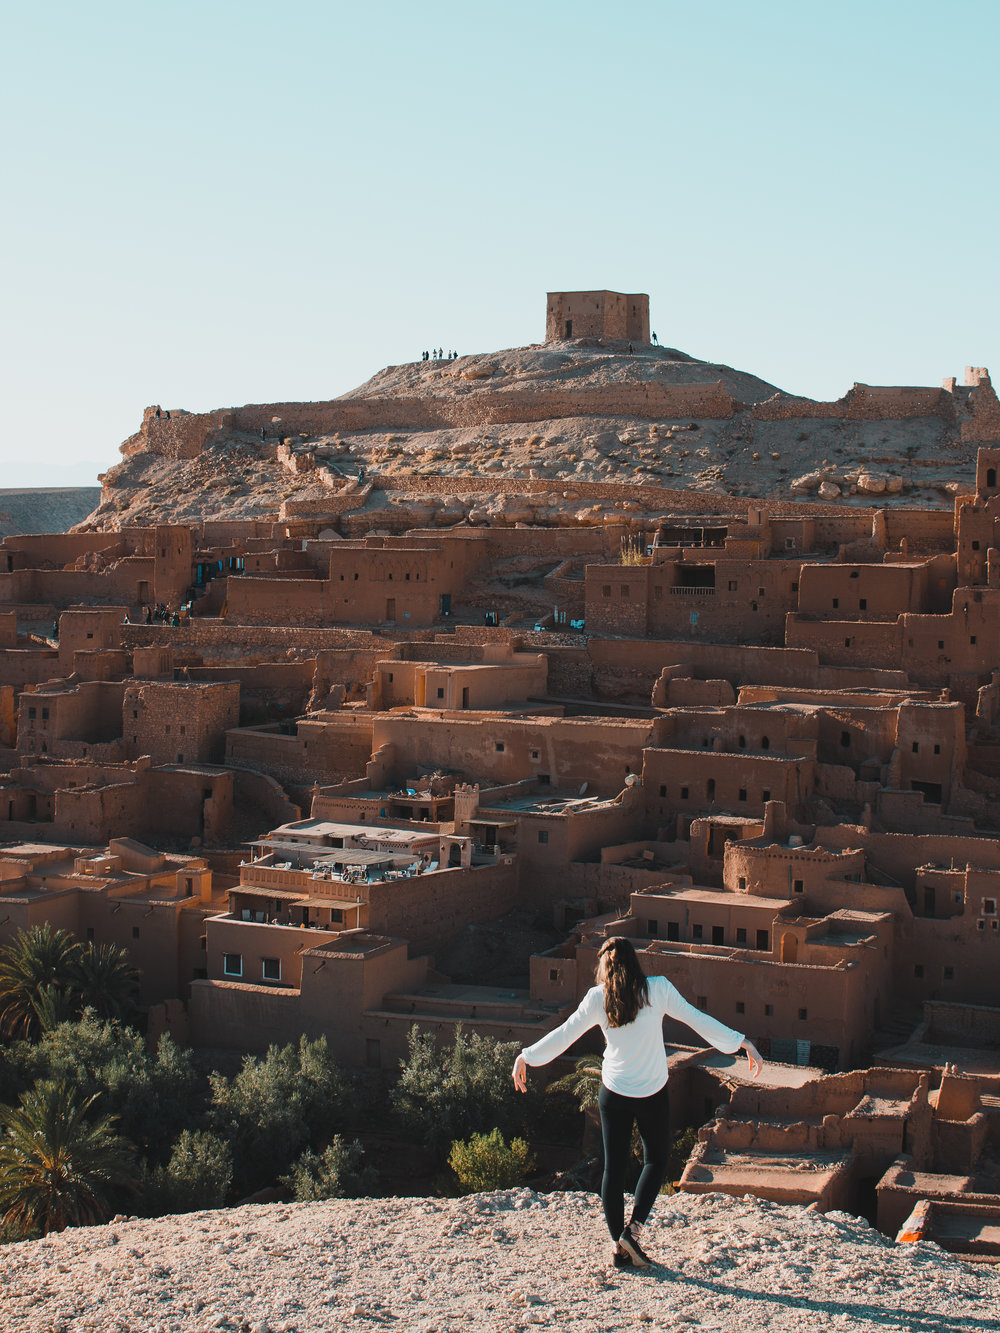 Ait Benhaddou in Morocco was a filming location for the Game of Thrones TV series